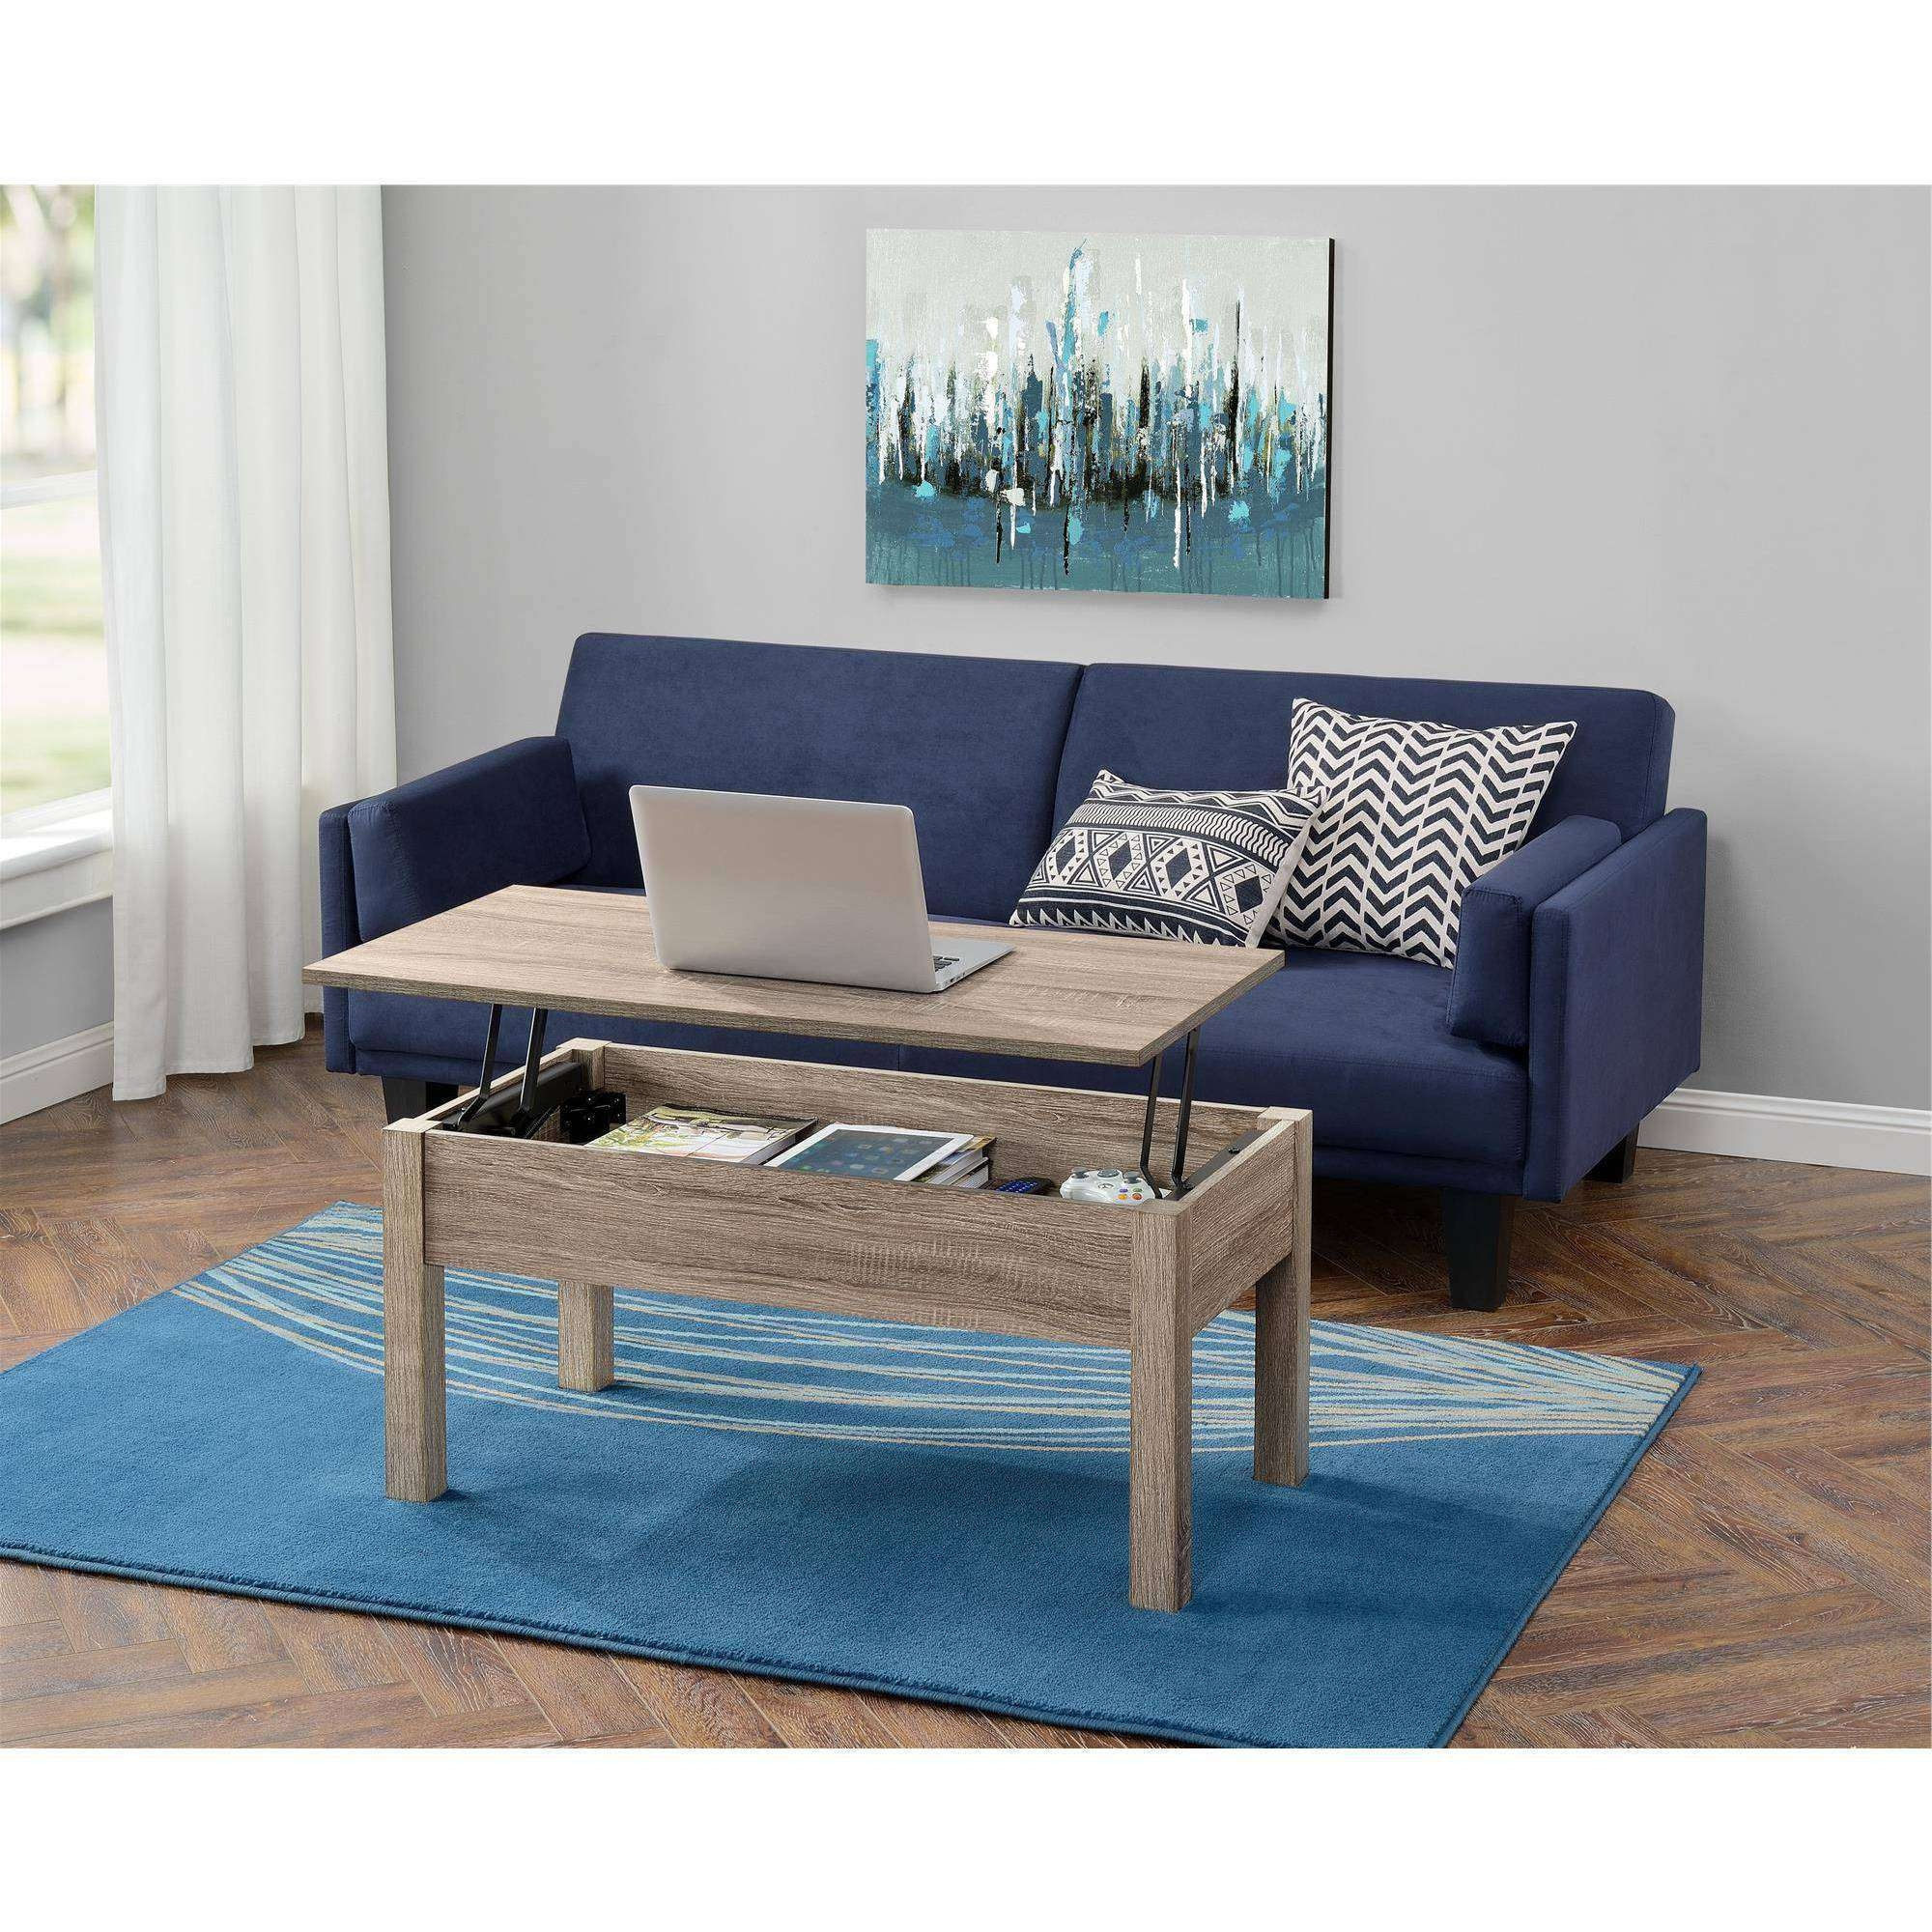 Mainstays Lift Top Coffee Table, Multiple Colors – Walmart With Most Recently Released Coffee Tables Extendable Top (View 12 of 20)